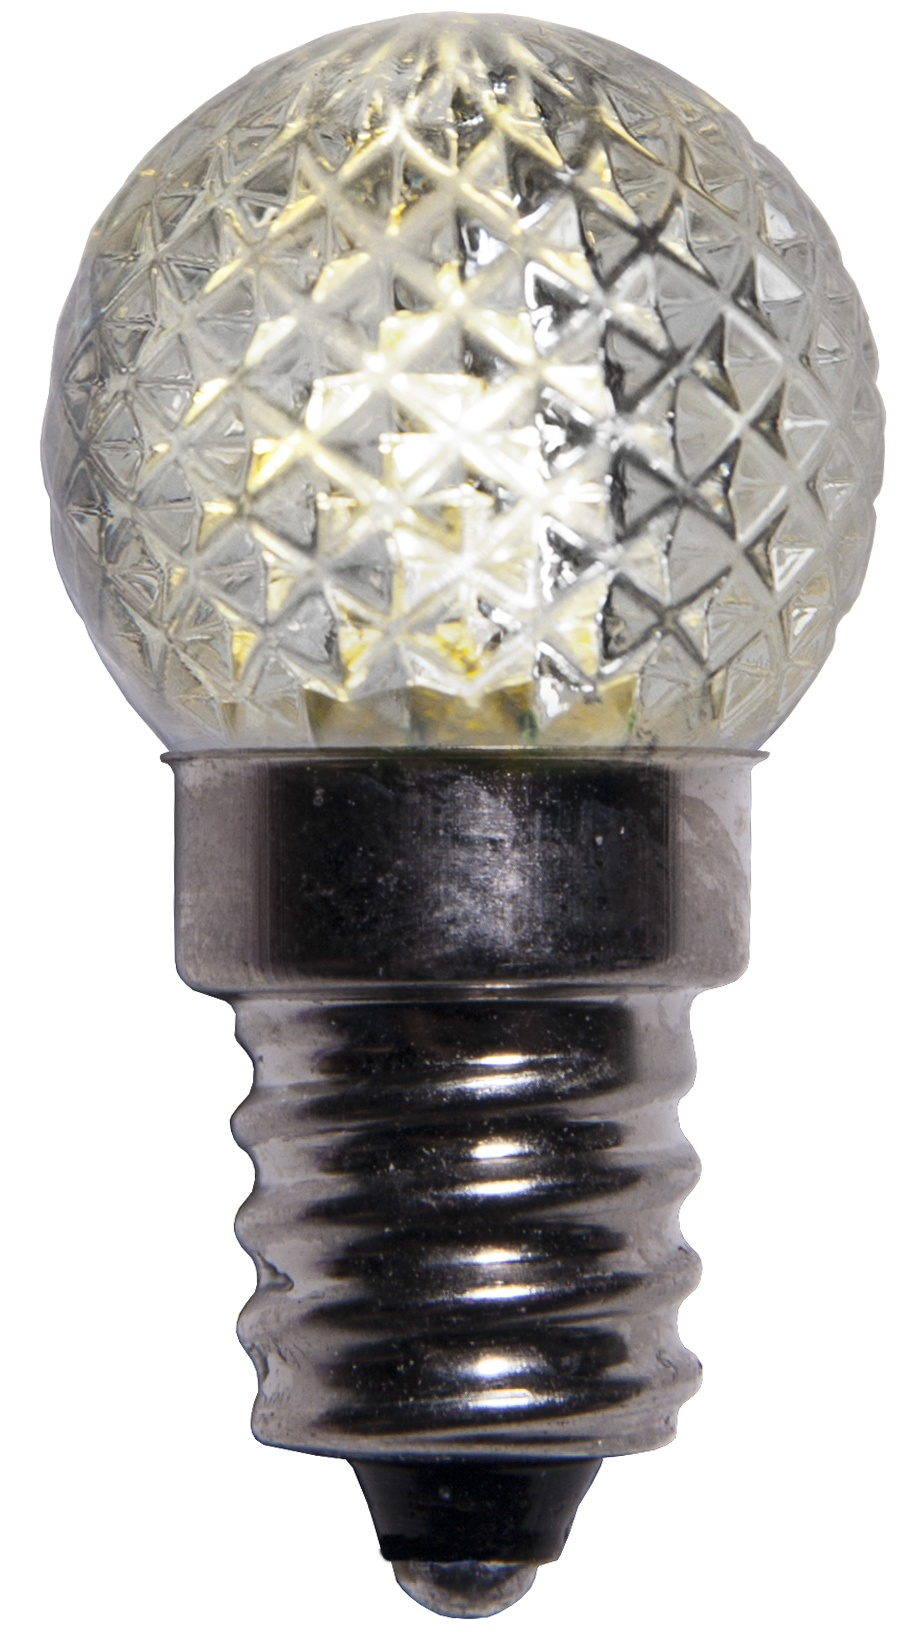 G20 120V Warm White LED Replacement Bulbs - Wintergreen Corporation